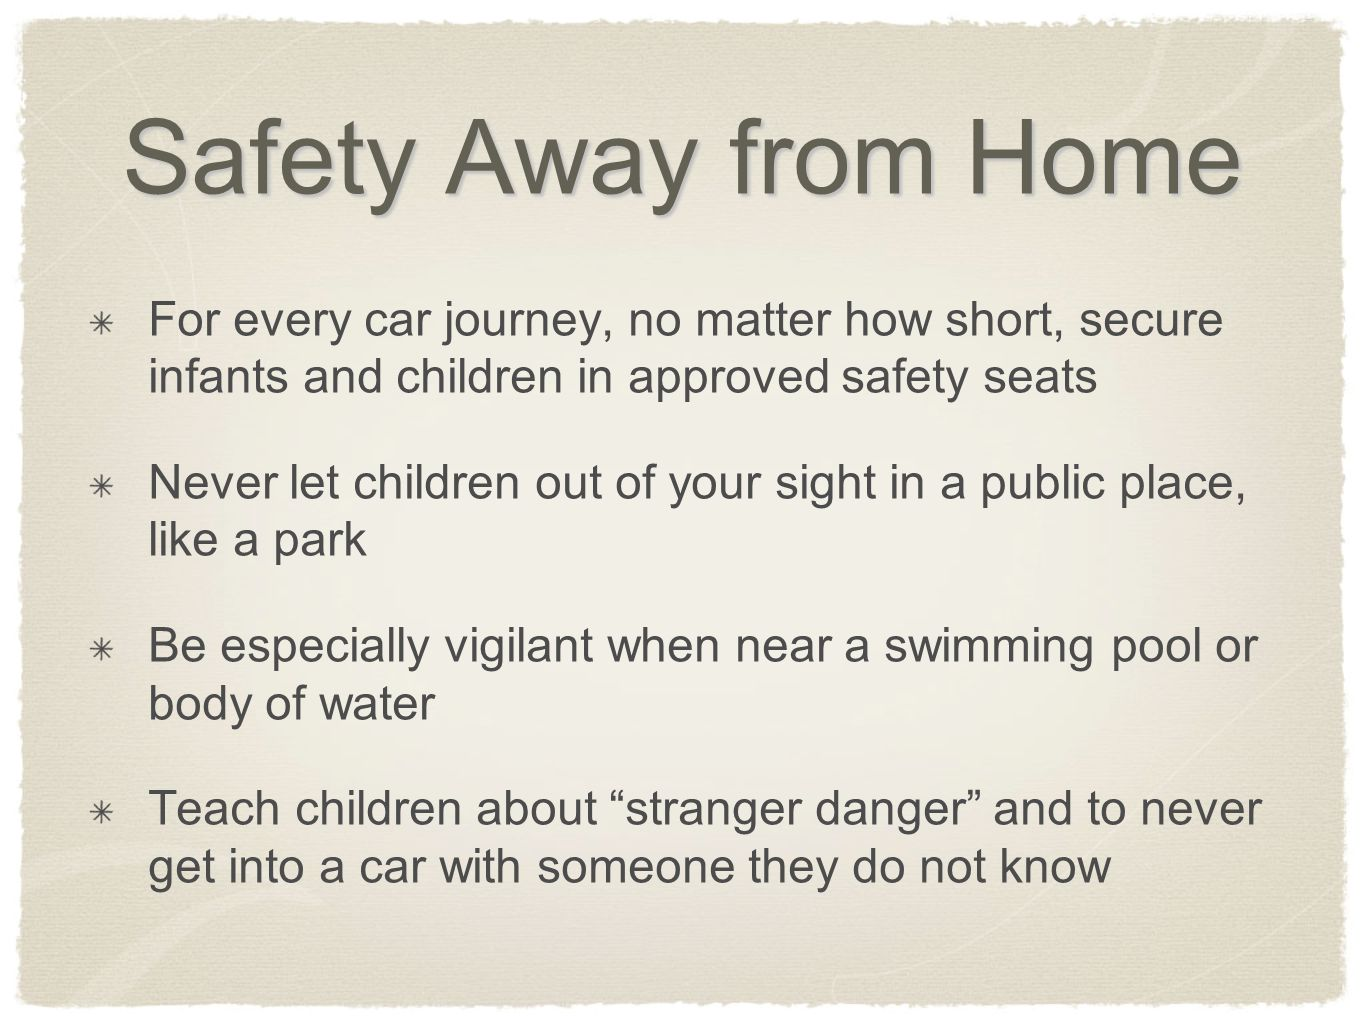 Safety Away from Home For every car journey, no matter how short, secure infants and children in approved safety seats.